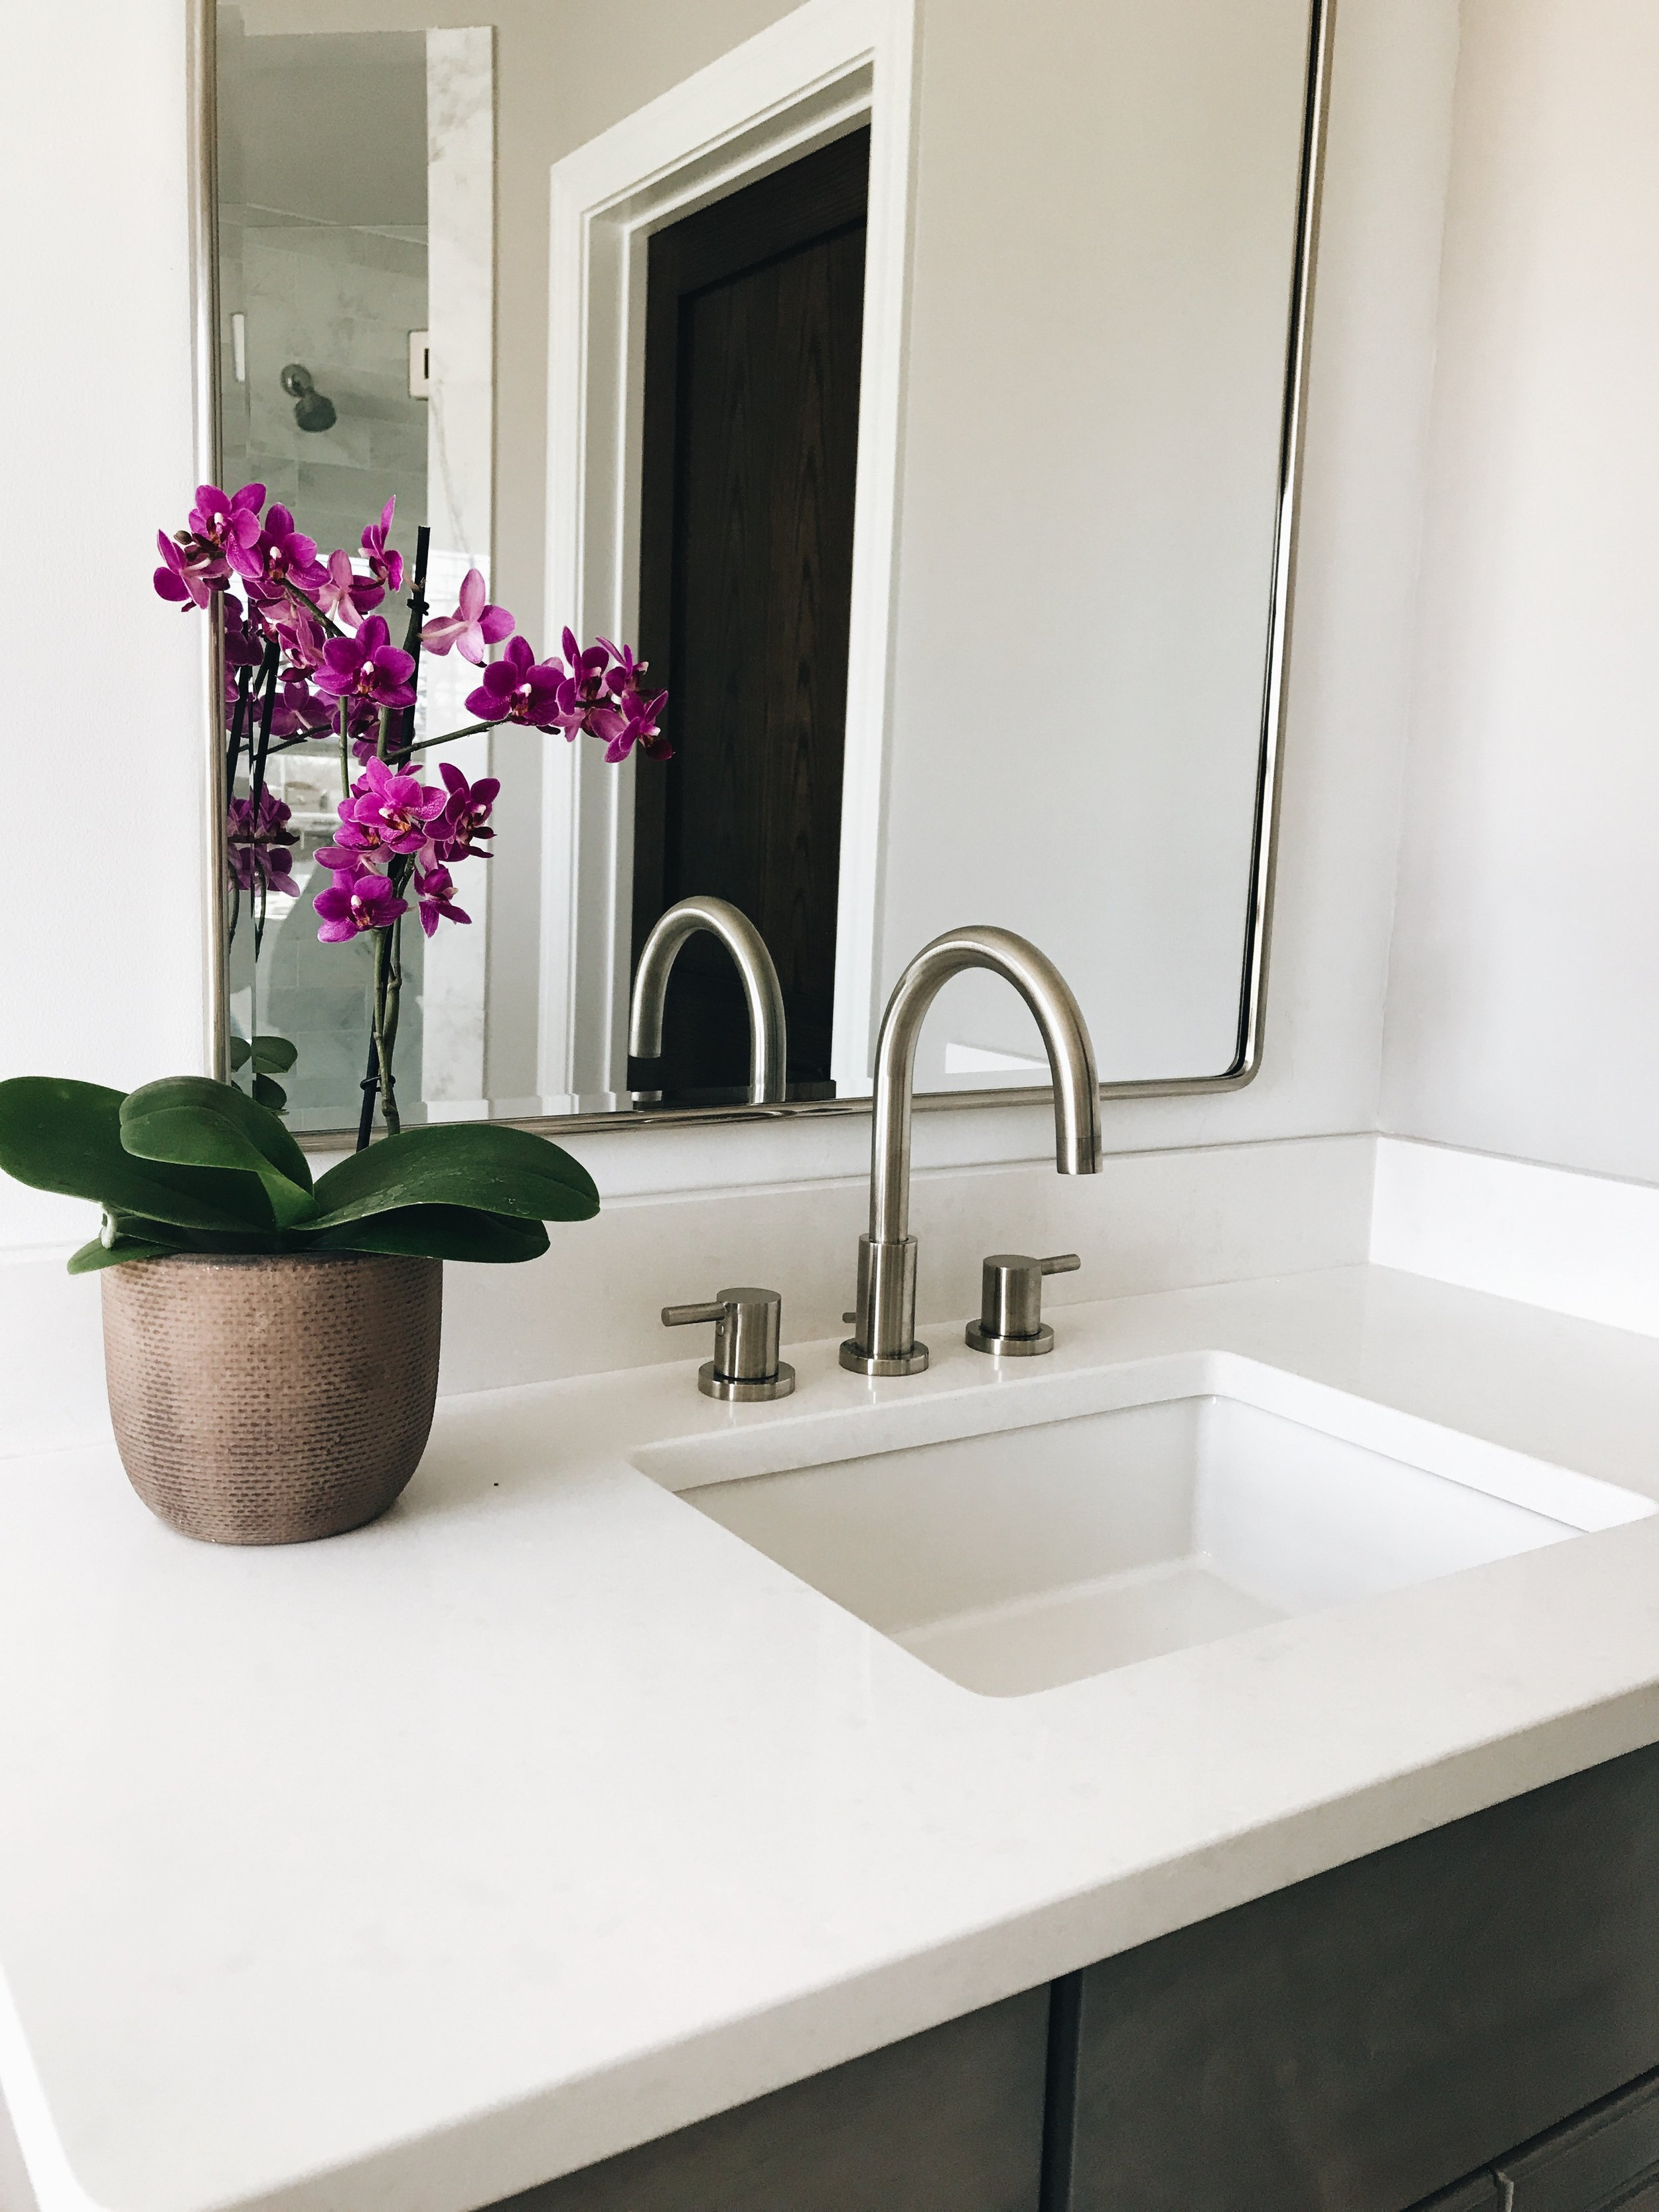 Avoid These Two Major Mistakes When Selecting Bathroom Vanity Mirrors. What To Look For When Selecting Bathroom Vanity Mirrors.